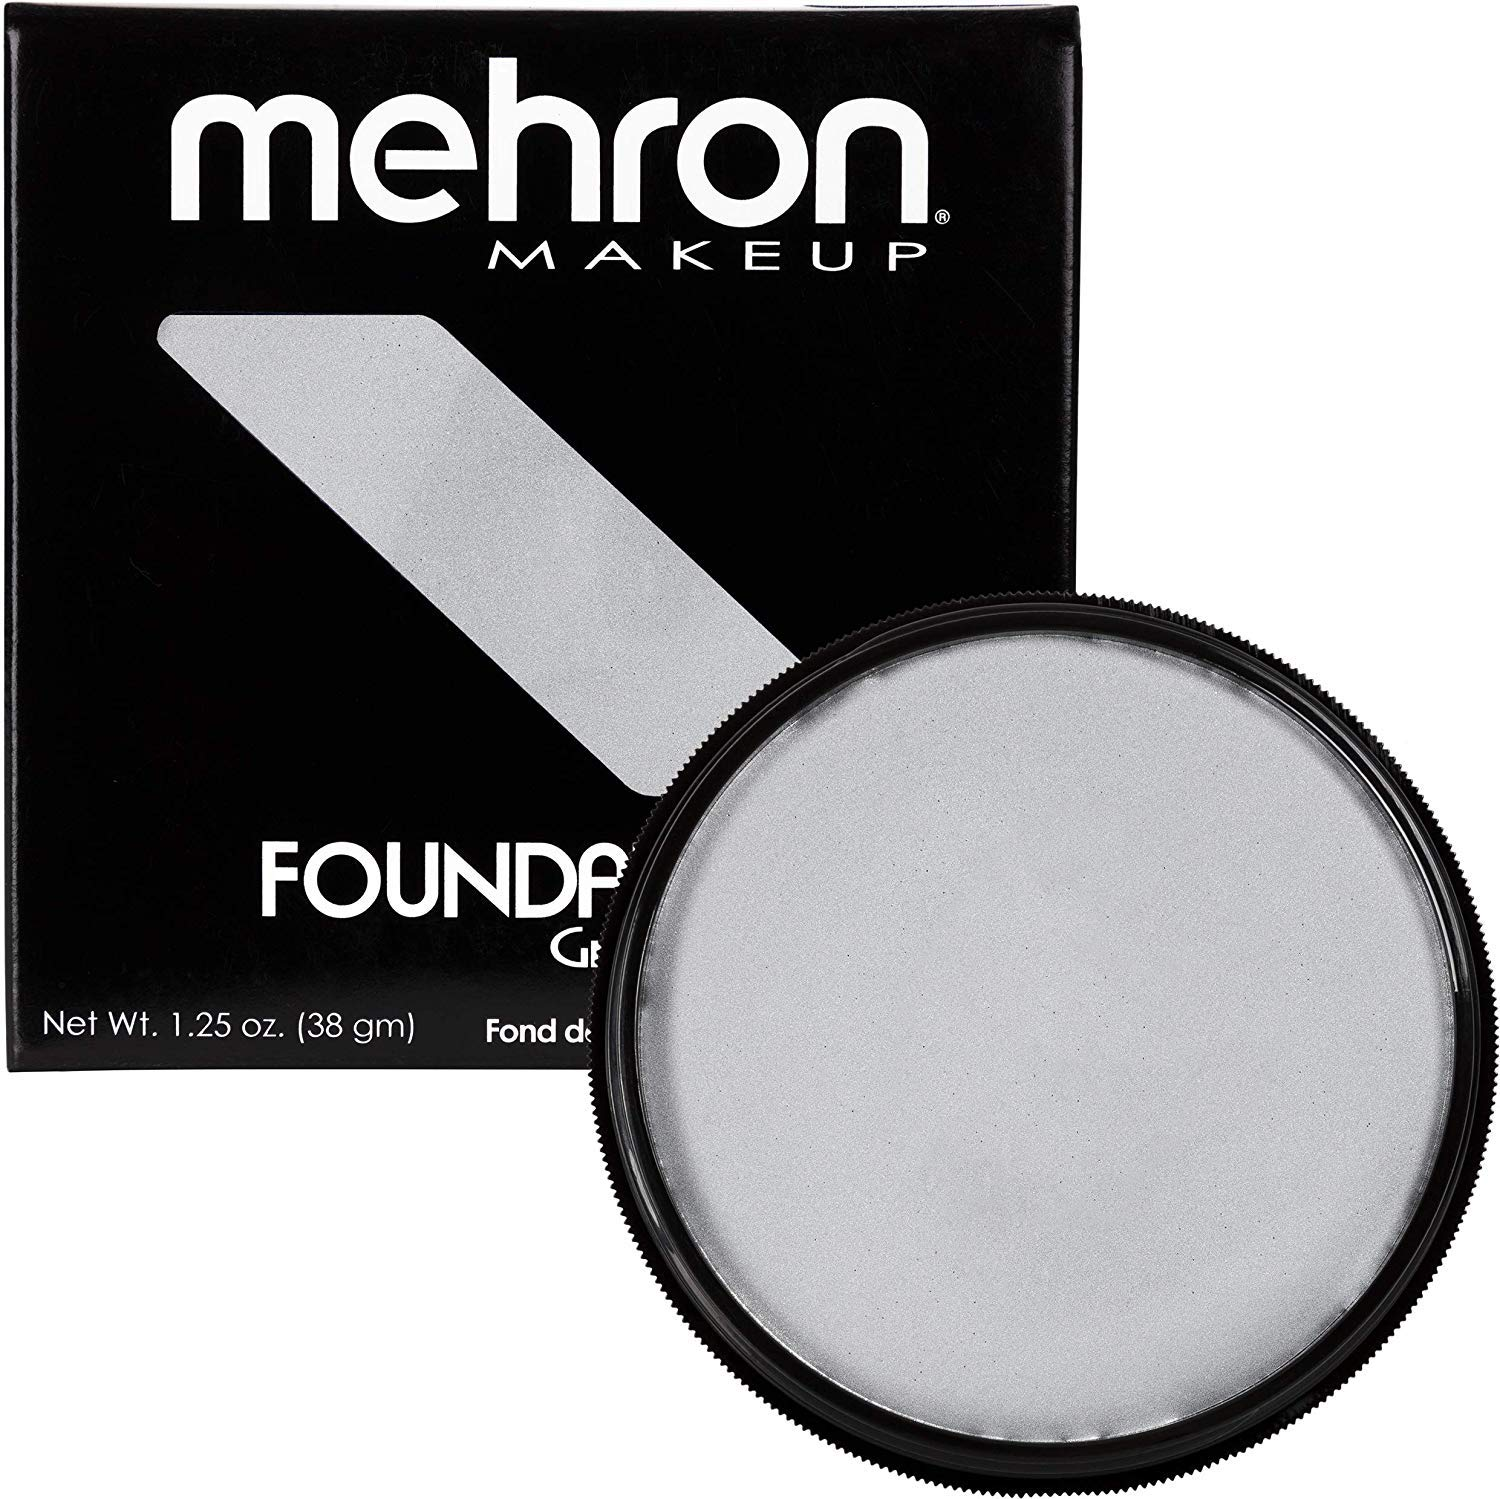 Mehron Makeup Foundation Greasepaint (1.25 ounce) (Silver)